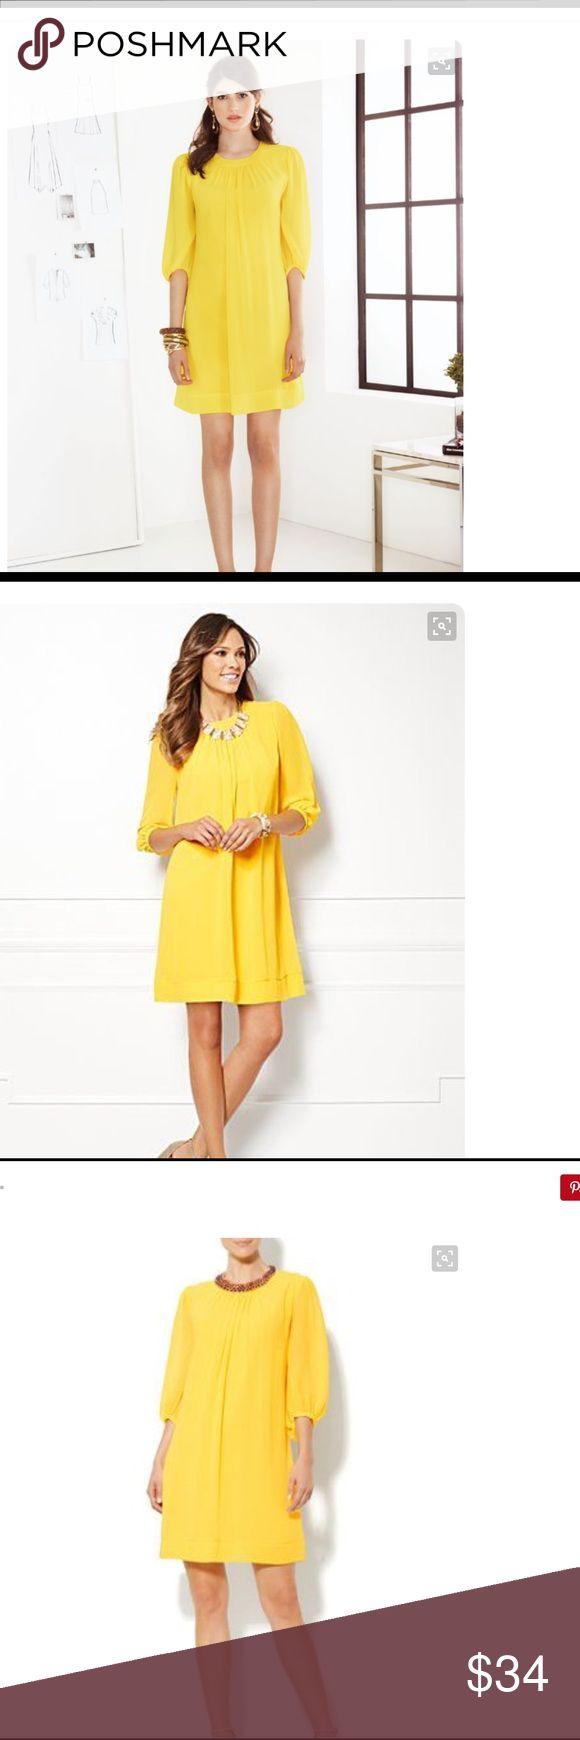 Eva Mendez Sabrina Dress NWT Eva Mendez Collection for New York & Company, Sabrina Dress in canary yellow. See through 3/4 sleeves, fully lined  and invisible center back zipper. 100 % Polyester/ XS Petite New York & Company Dresses Midi